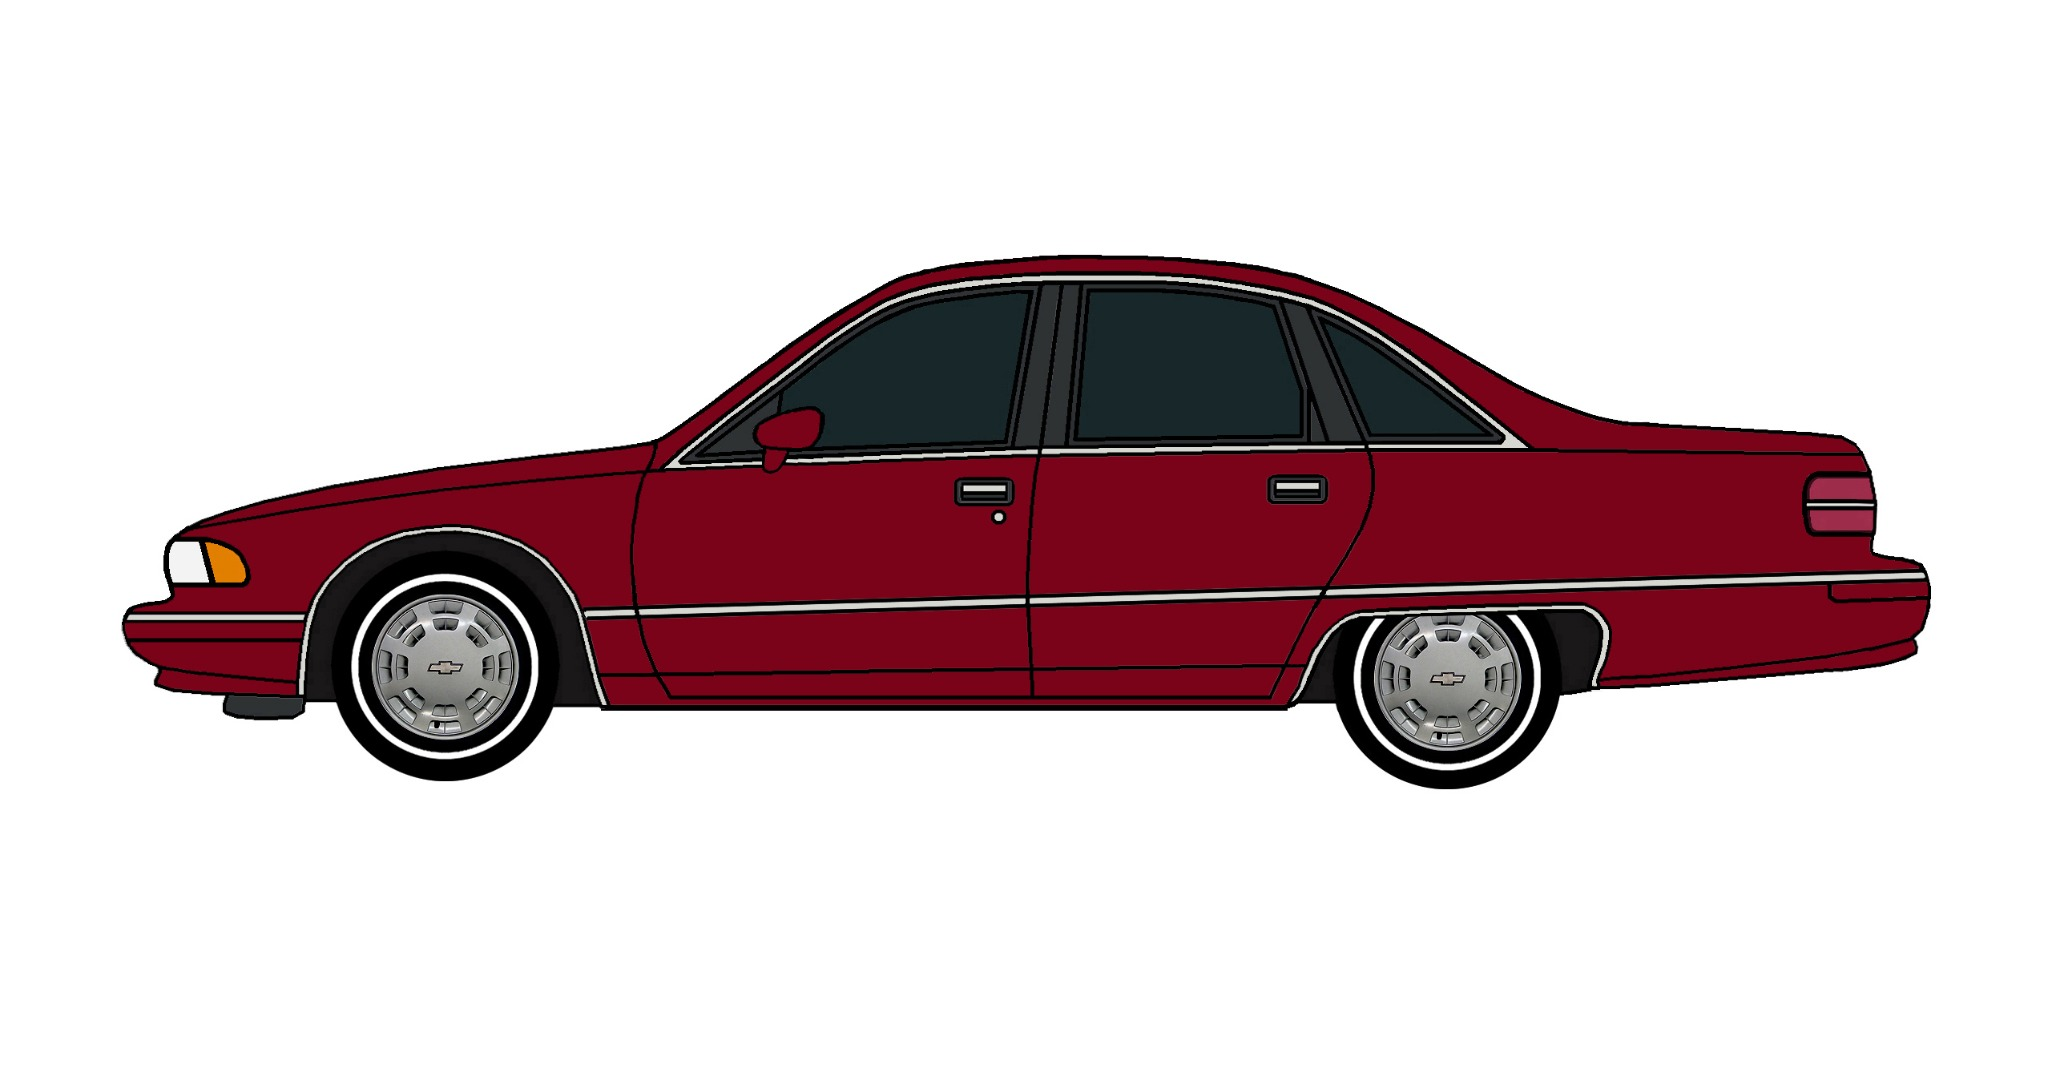 1991 Chevy Caprice DEEP BURGUNDY